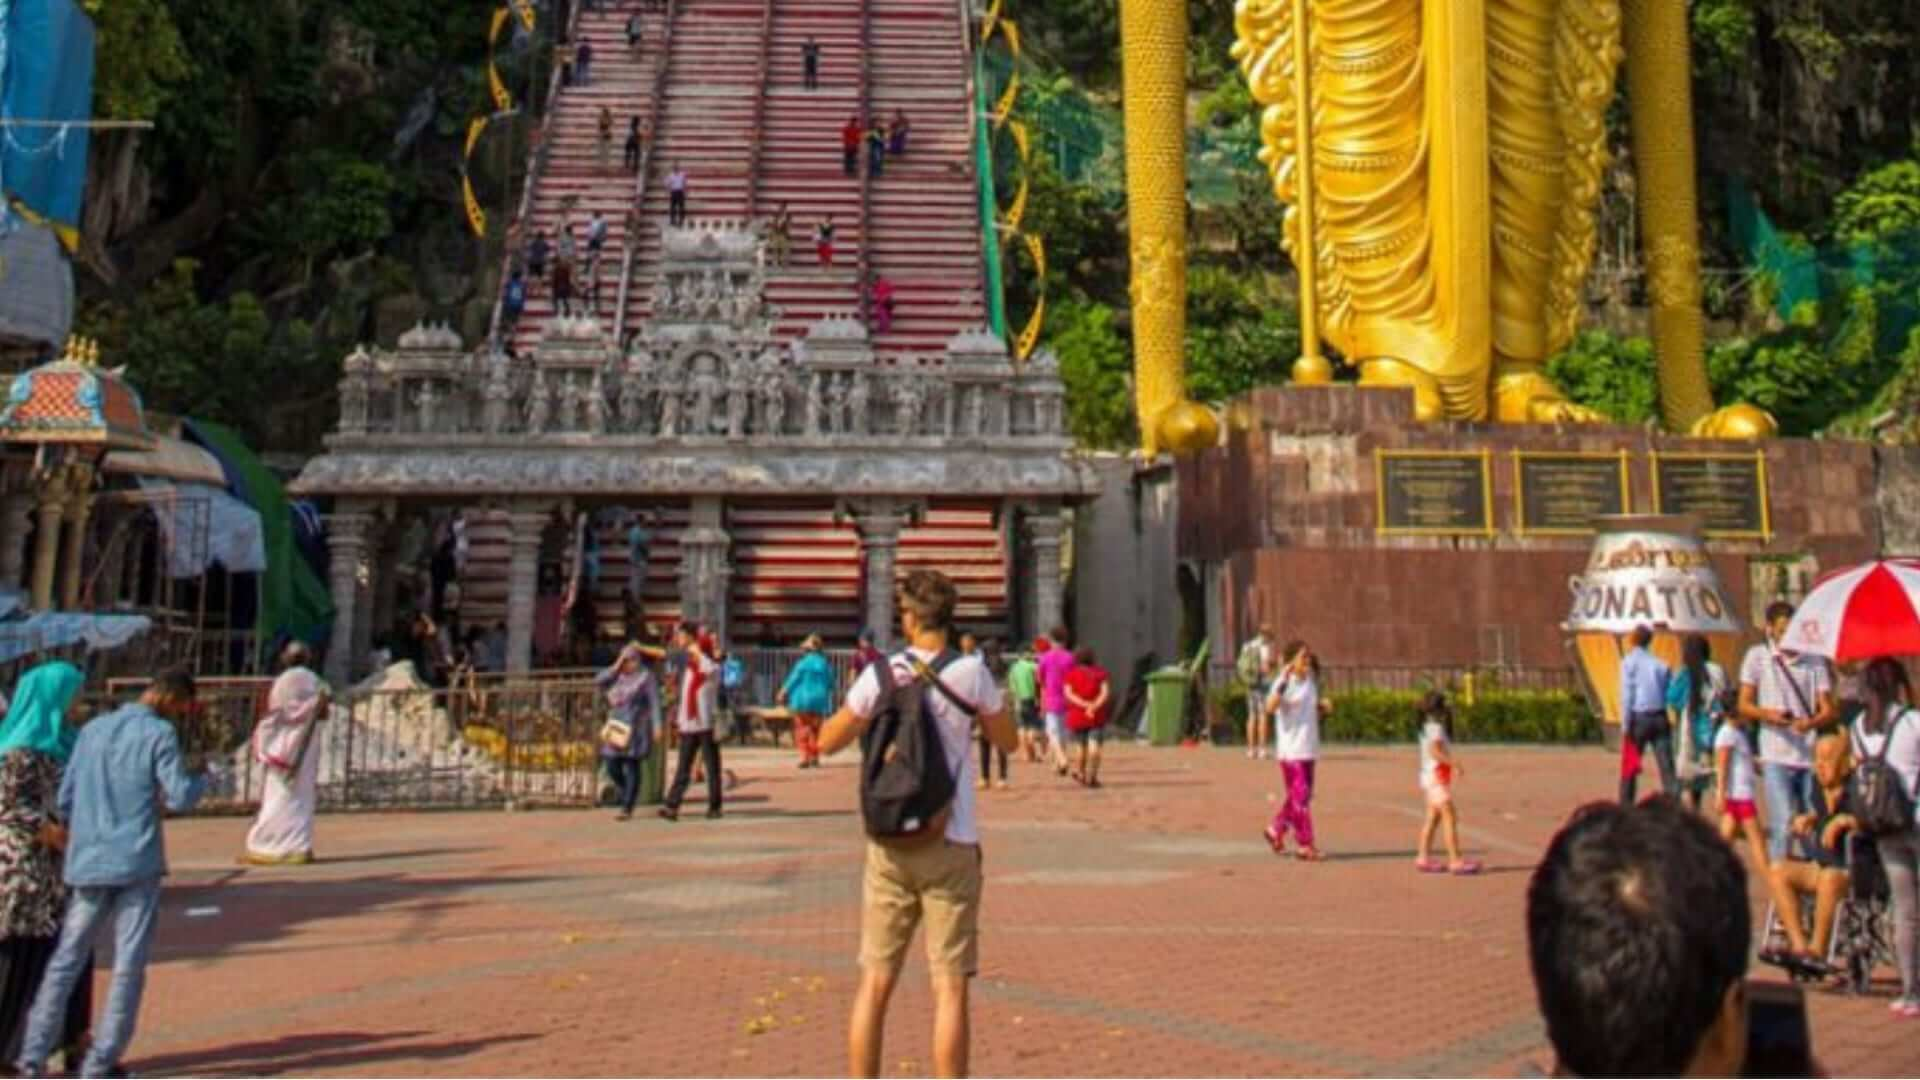 A boy is standing on a square with his head towards a big staircase that is leading to a temple in Malaysia.